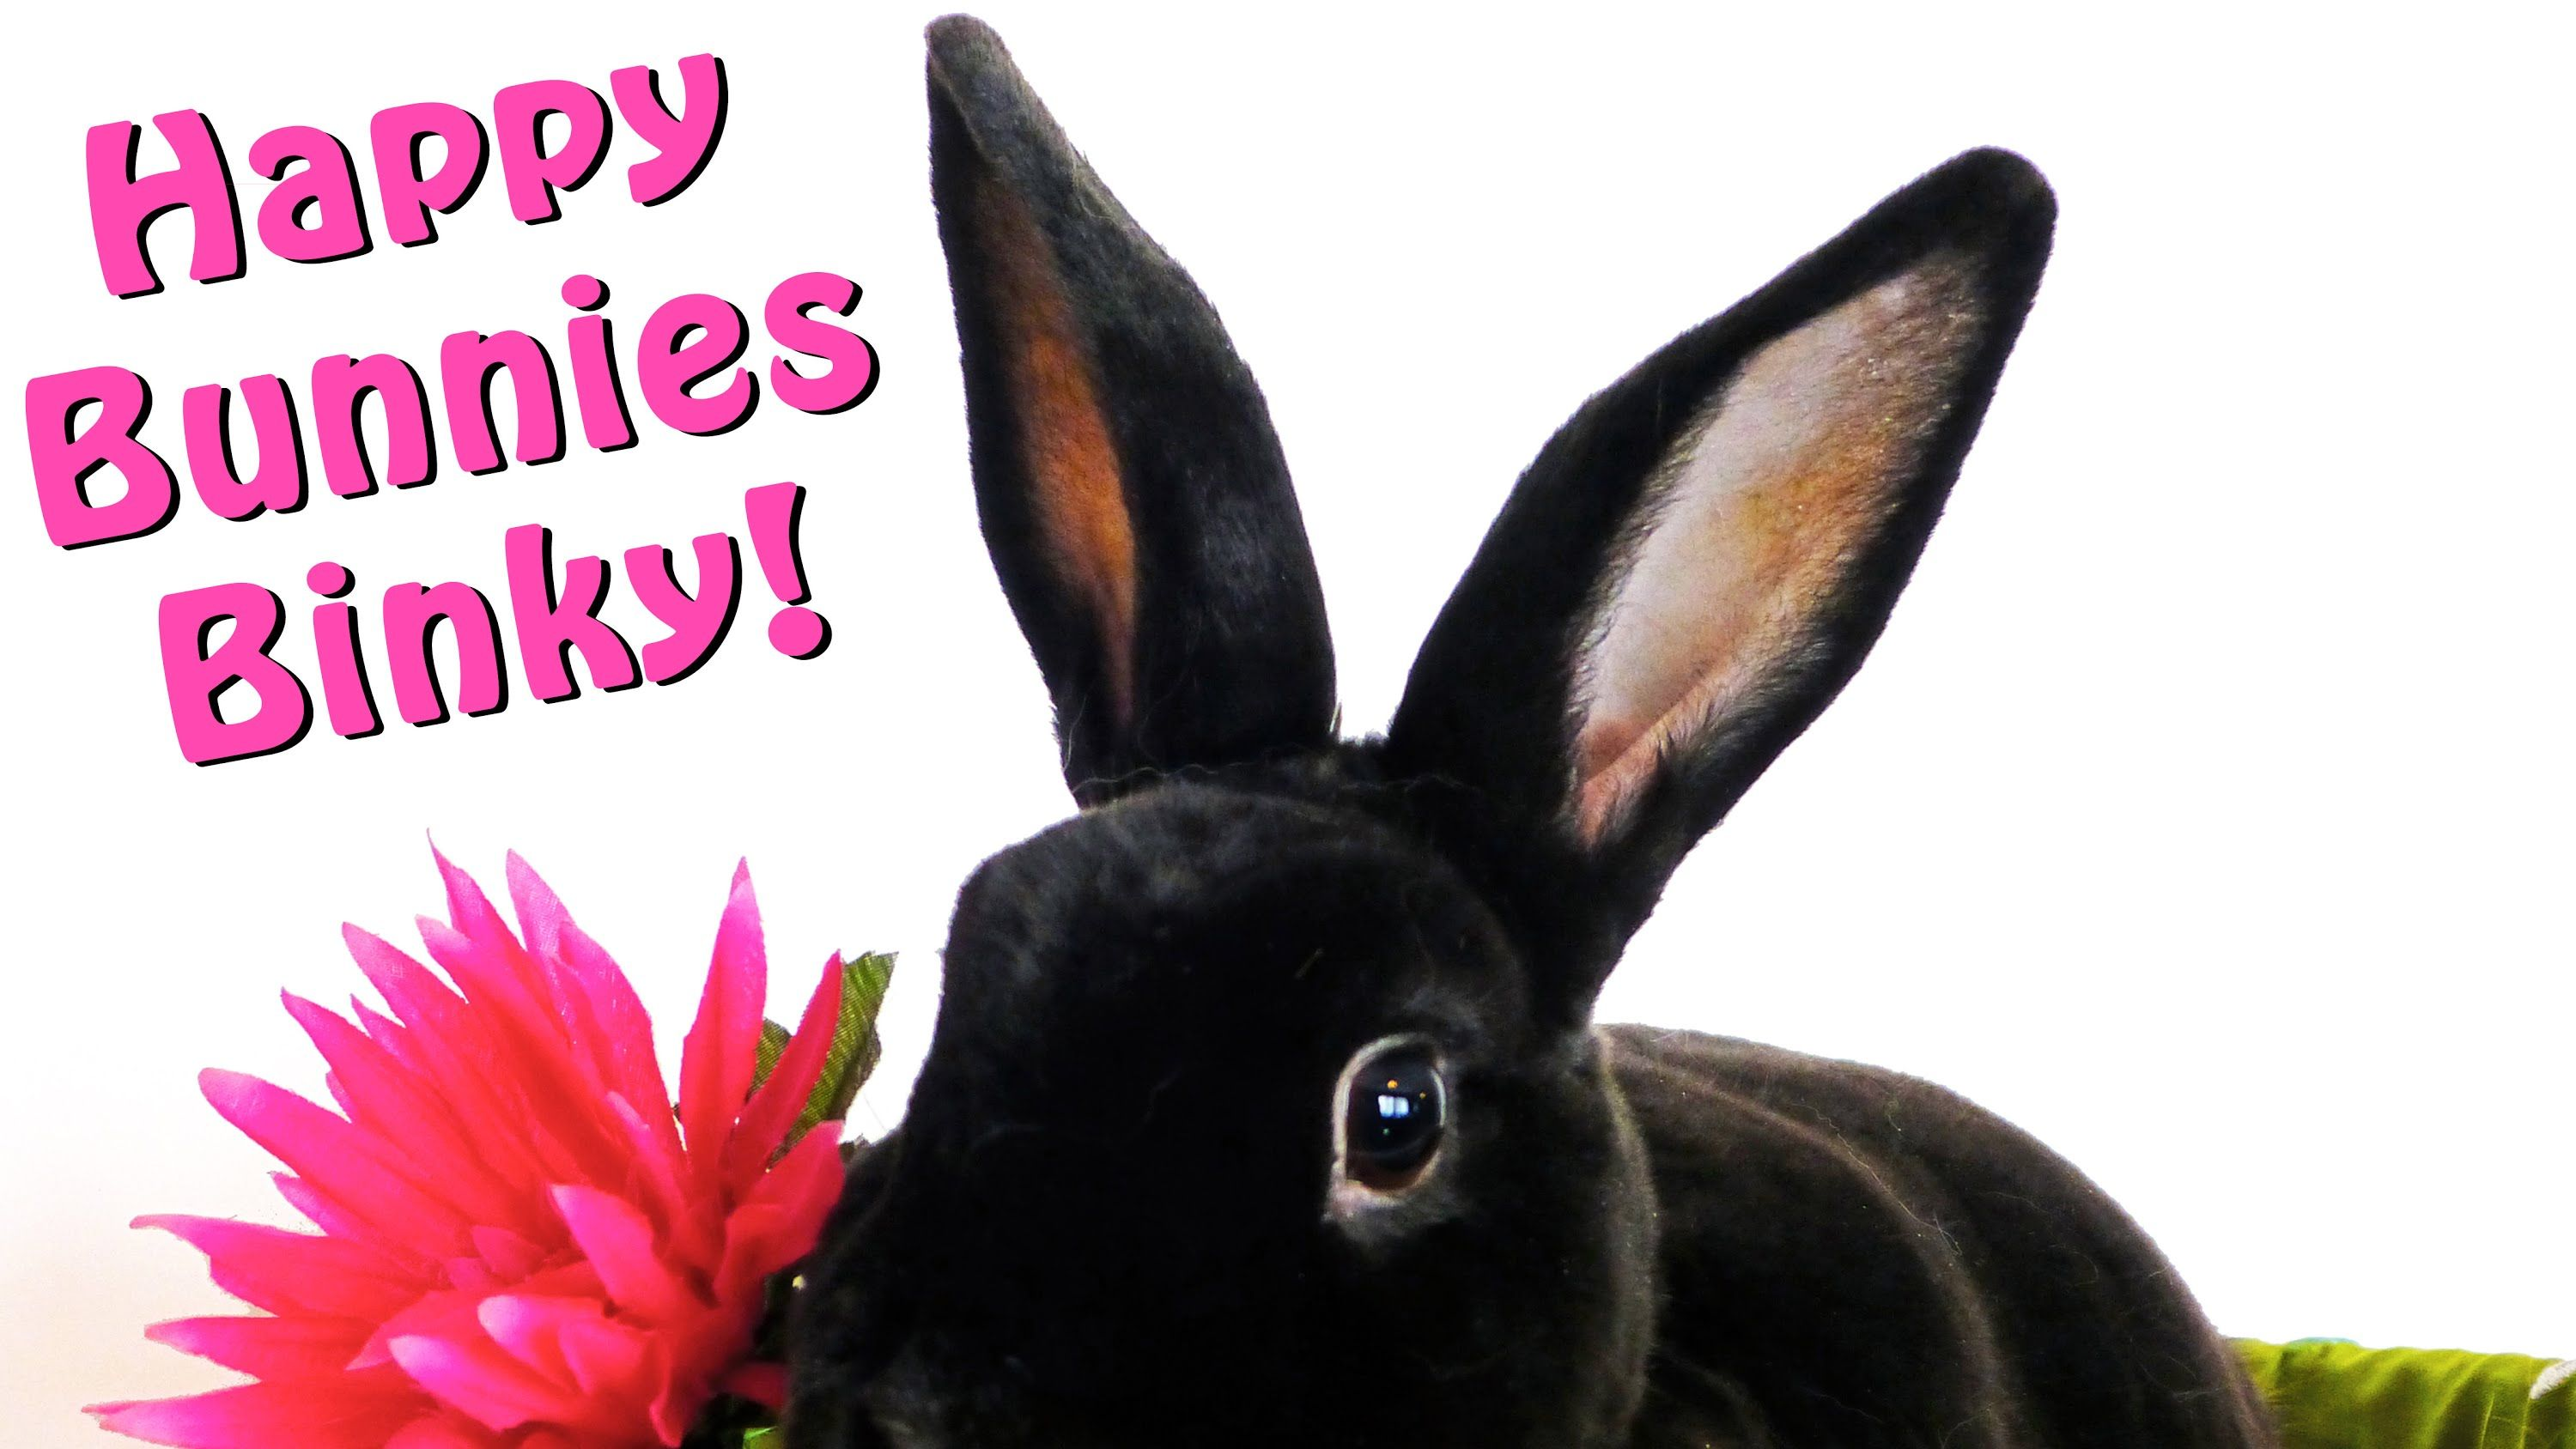 Funny rabbit funny rabbit pictures pictures of rabbits funny - Cute Funny Happy Bunnies Binkying House Rabbits Binky When They Are